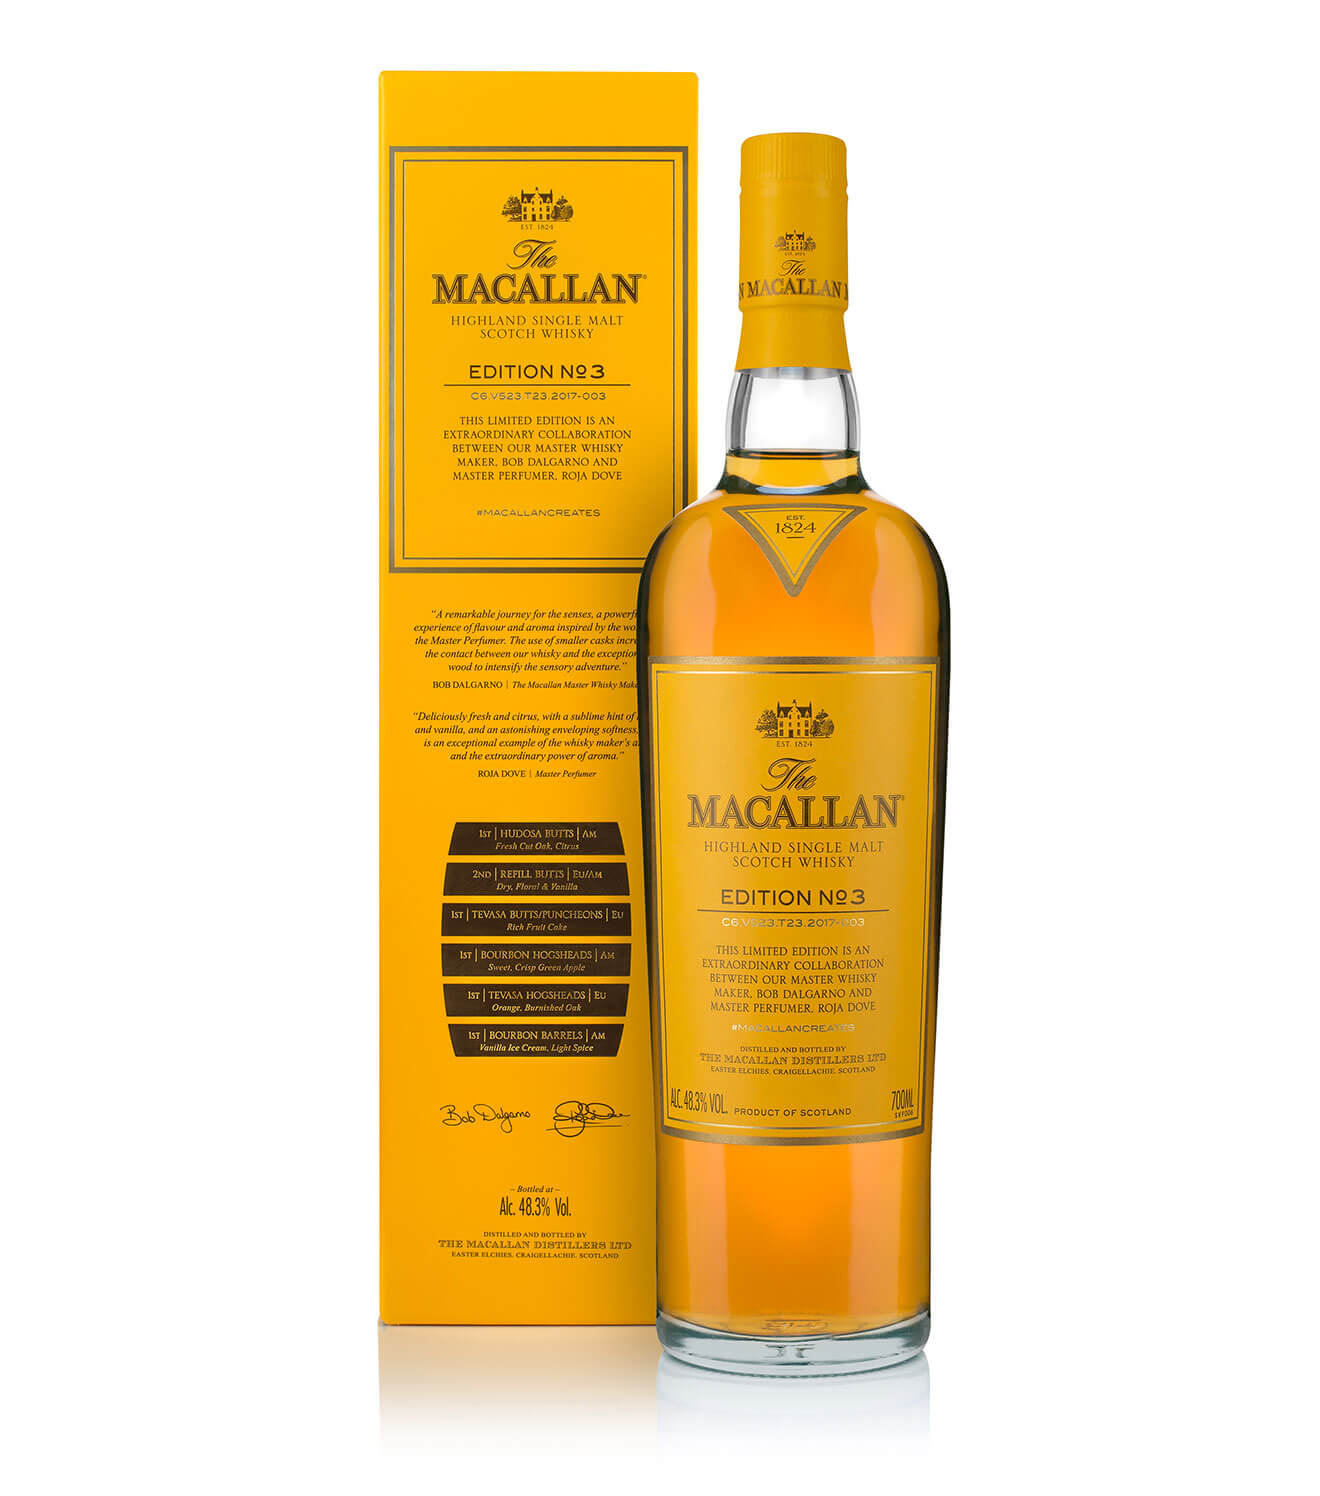 The Macallan Edition No. 3, Bottle and Packaging